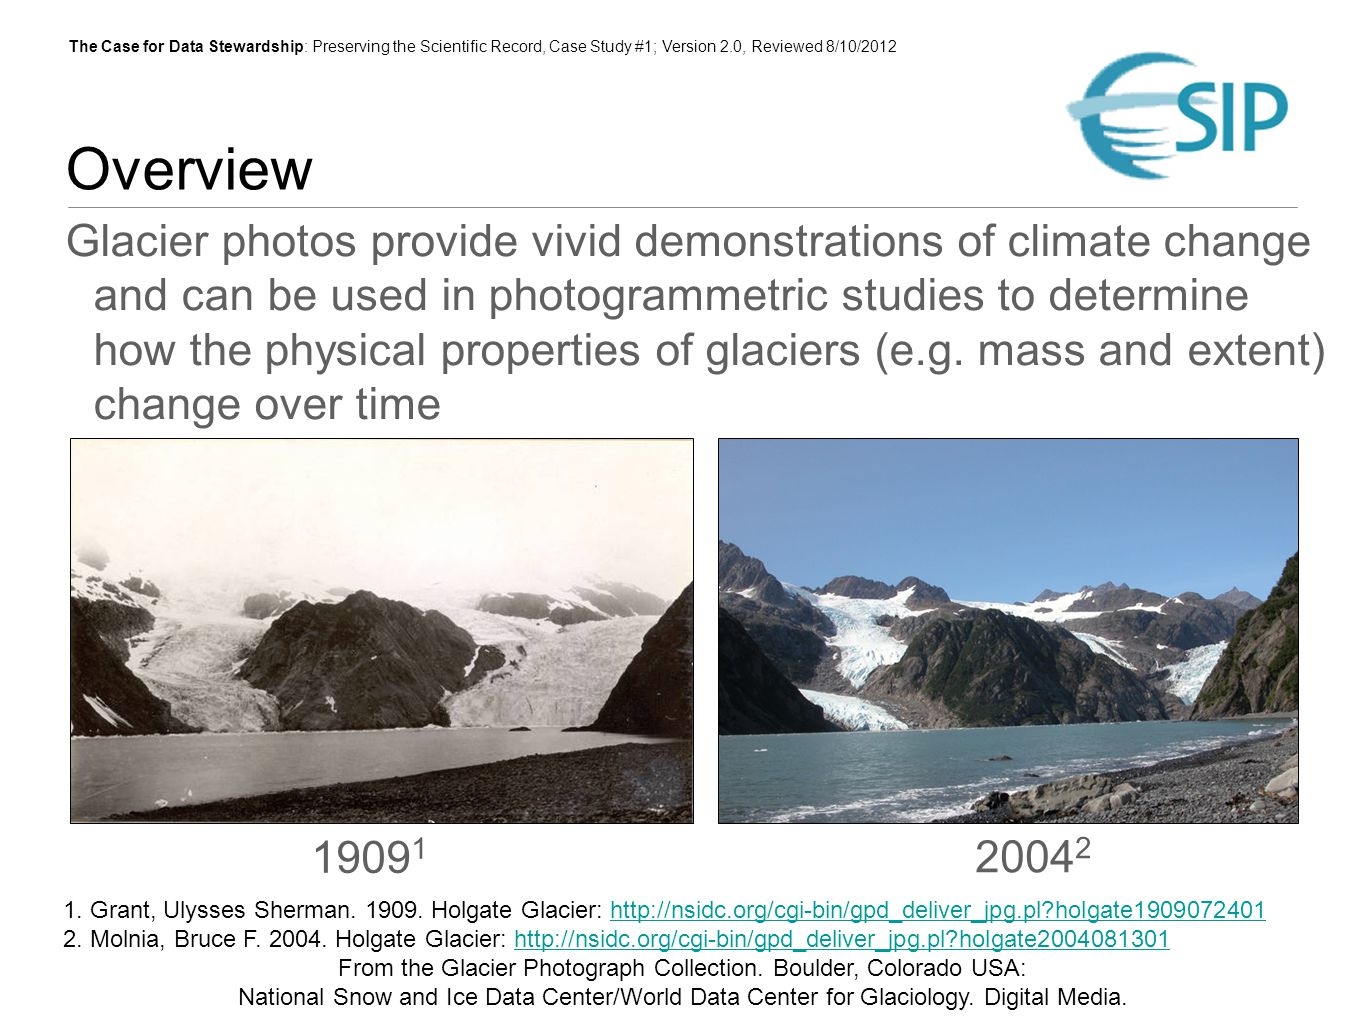 The Case for Data Stewardship: Preserving the Scientific Record, Case Study #1; Version 2.0, Reviewed 8/10/2012 NSIDC Glacier Photo Collection NSIDC curates and provides online access to more than 13,000 glacier photographs Photos from 130+ photographers, U.S.